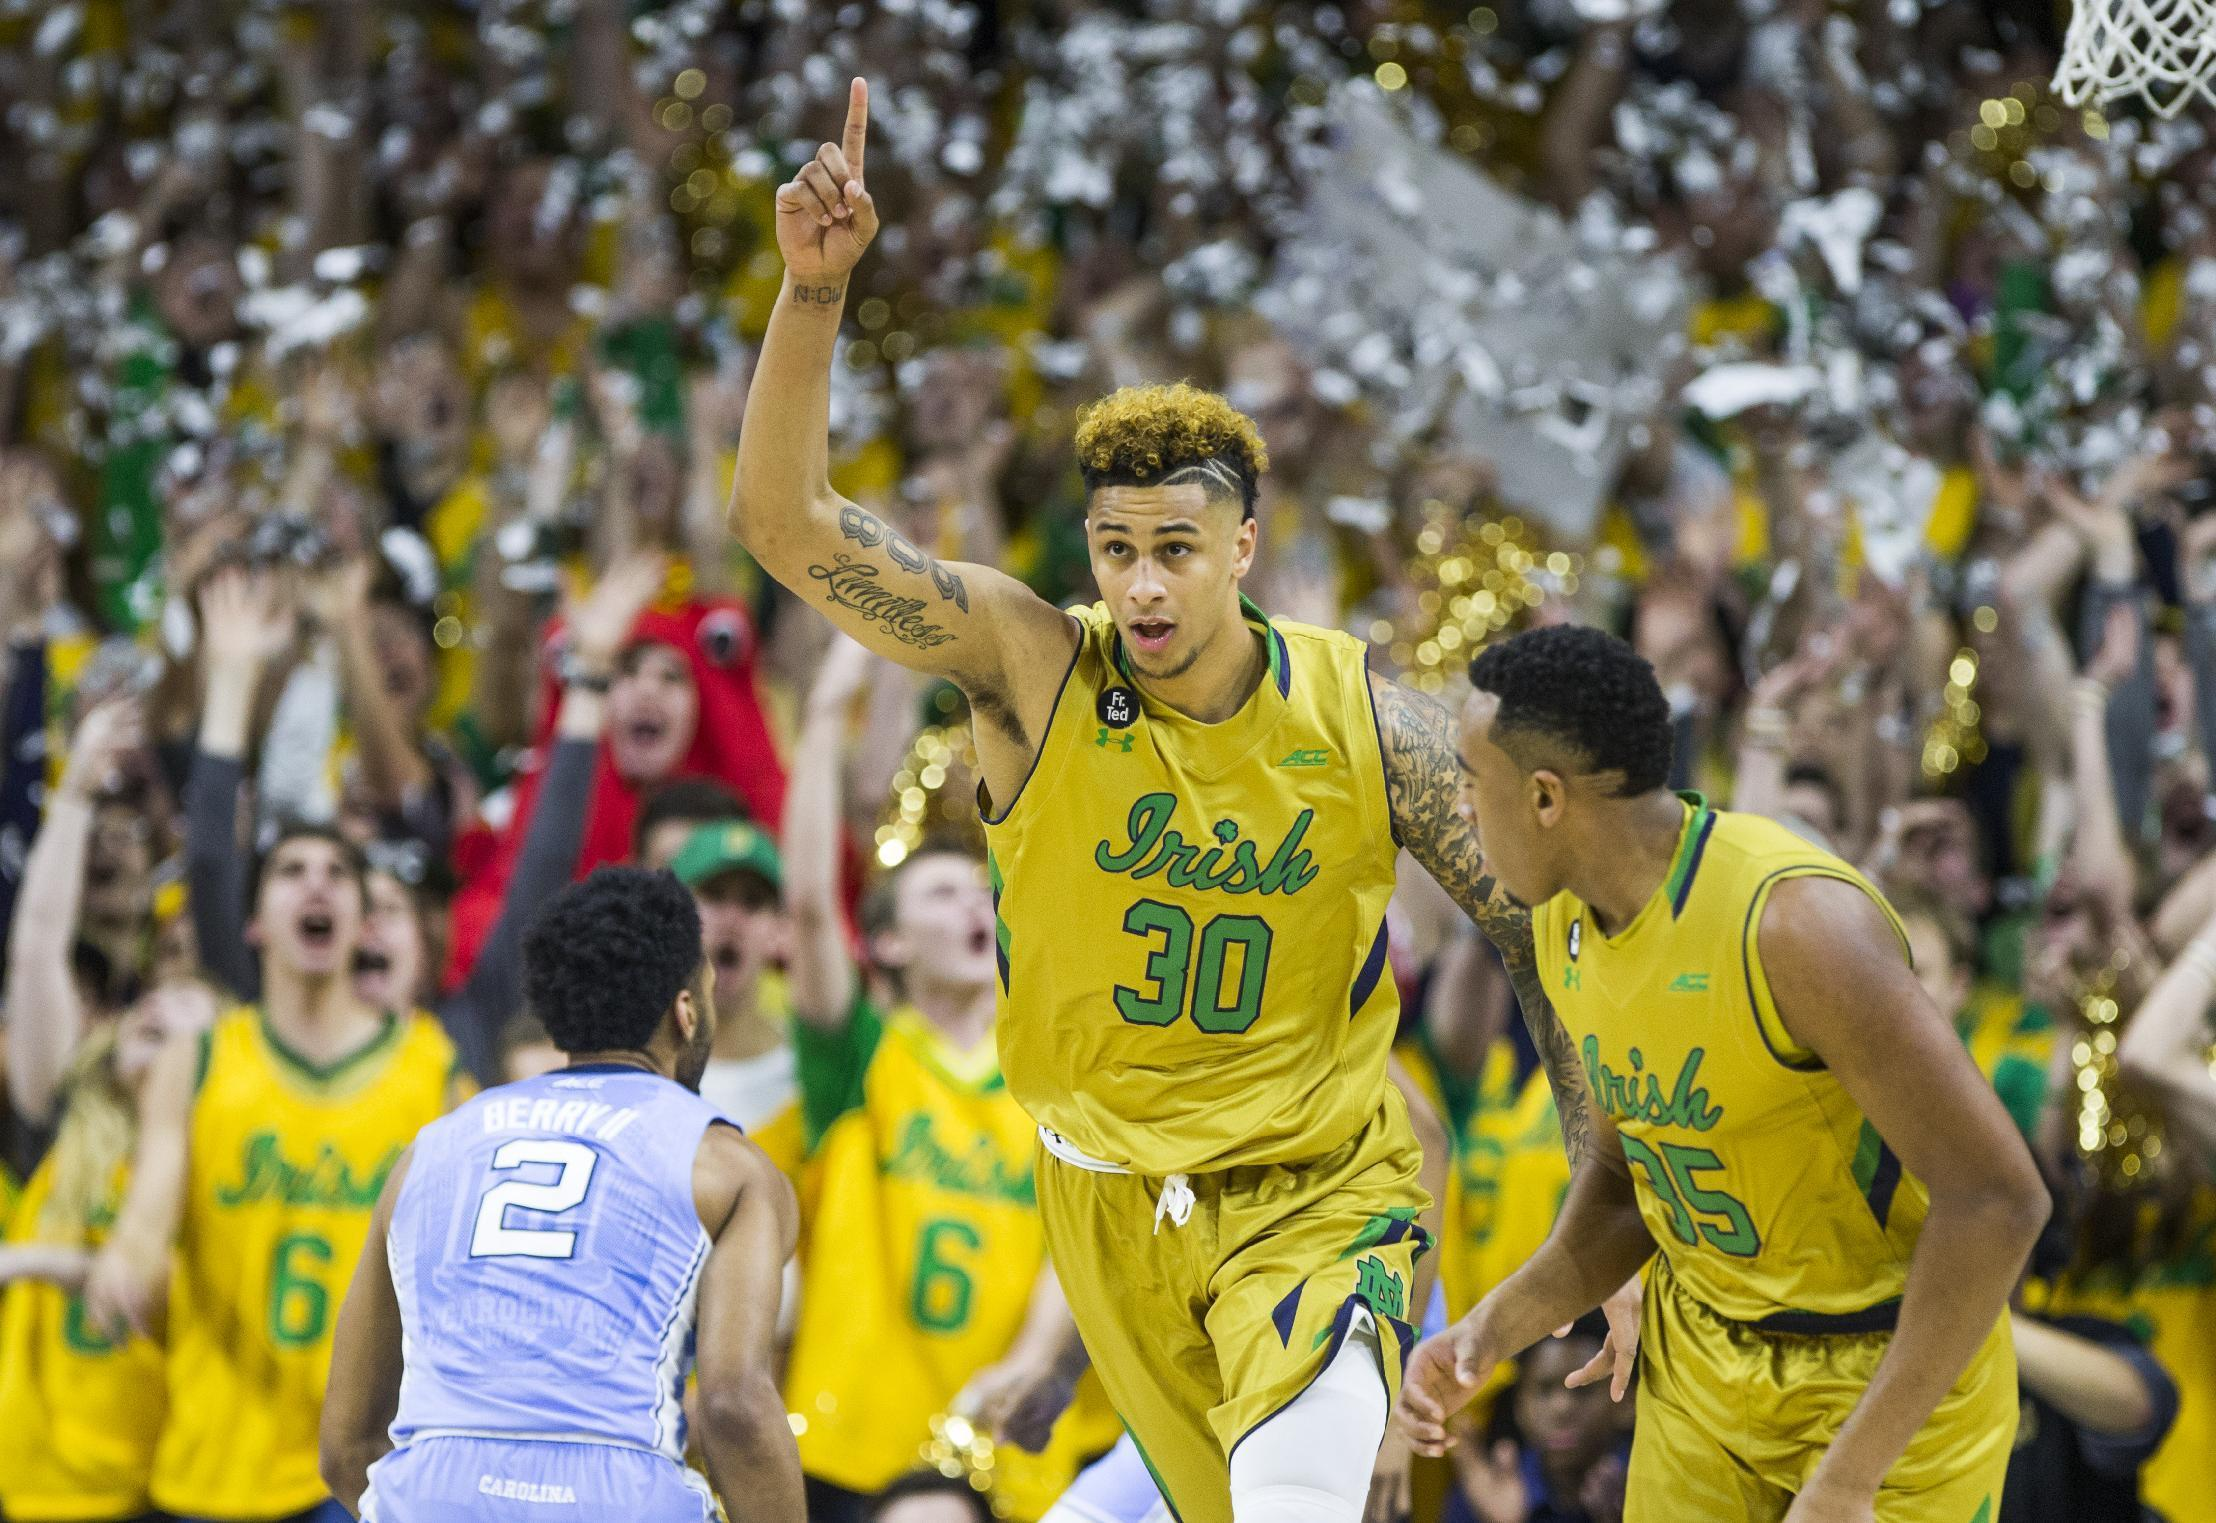 Notre Dame rallies to beat No. 2 North Carolina 80-76